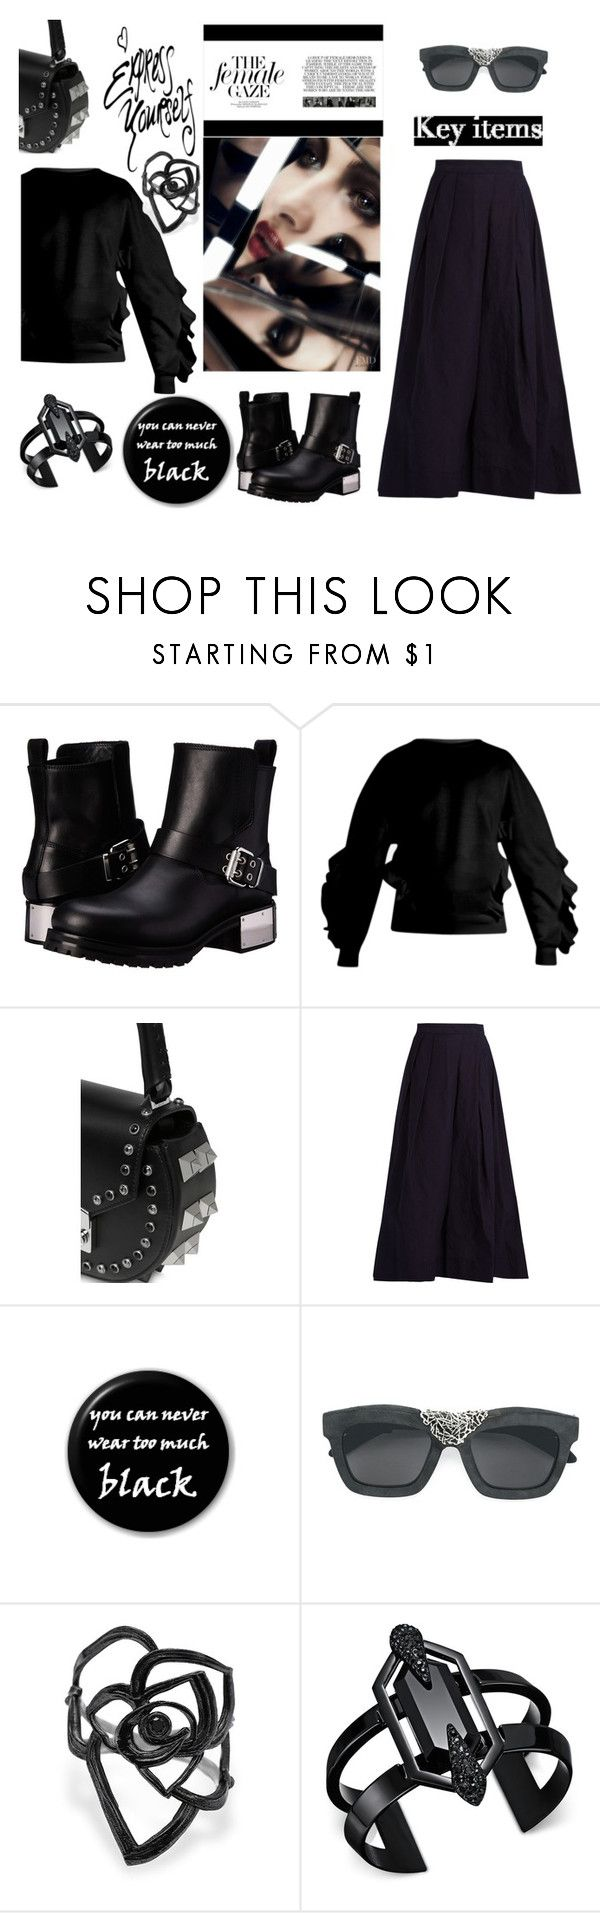 """Express yourself"" by zabead ❤ liked on Polyvore featuring McQ by Alexander McQueen, STELLA McCARTNEY, SALAR, REGULATION by Yohji Yamamoto, MANGO, Kuboraum and INC International Concepts"